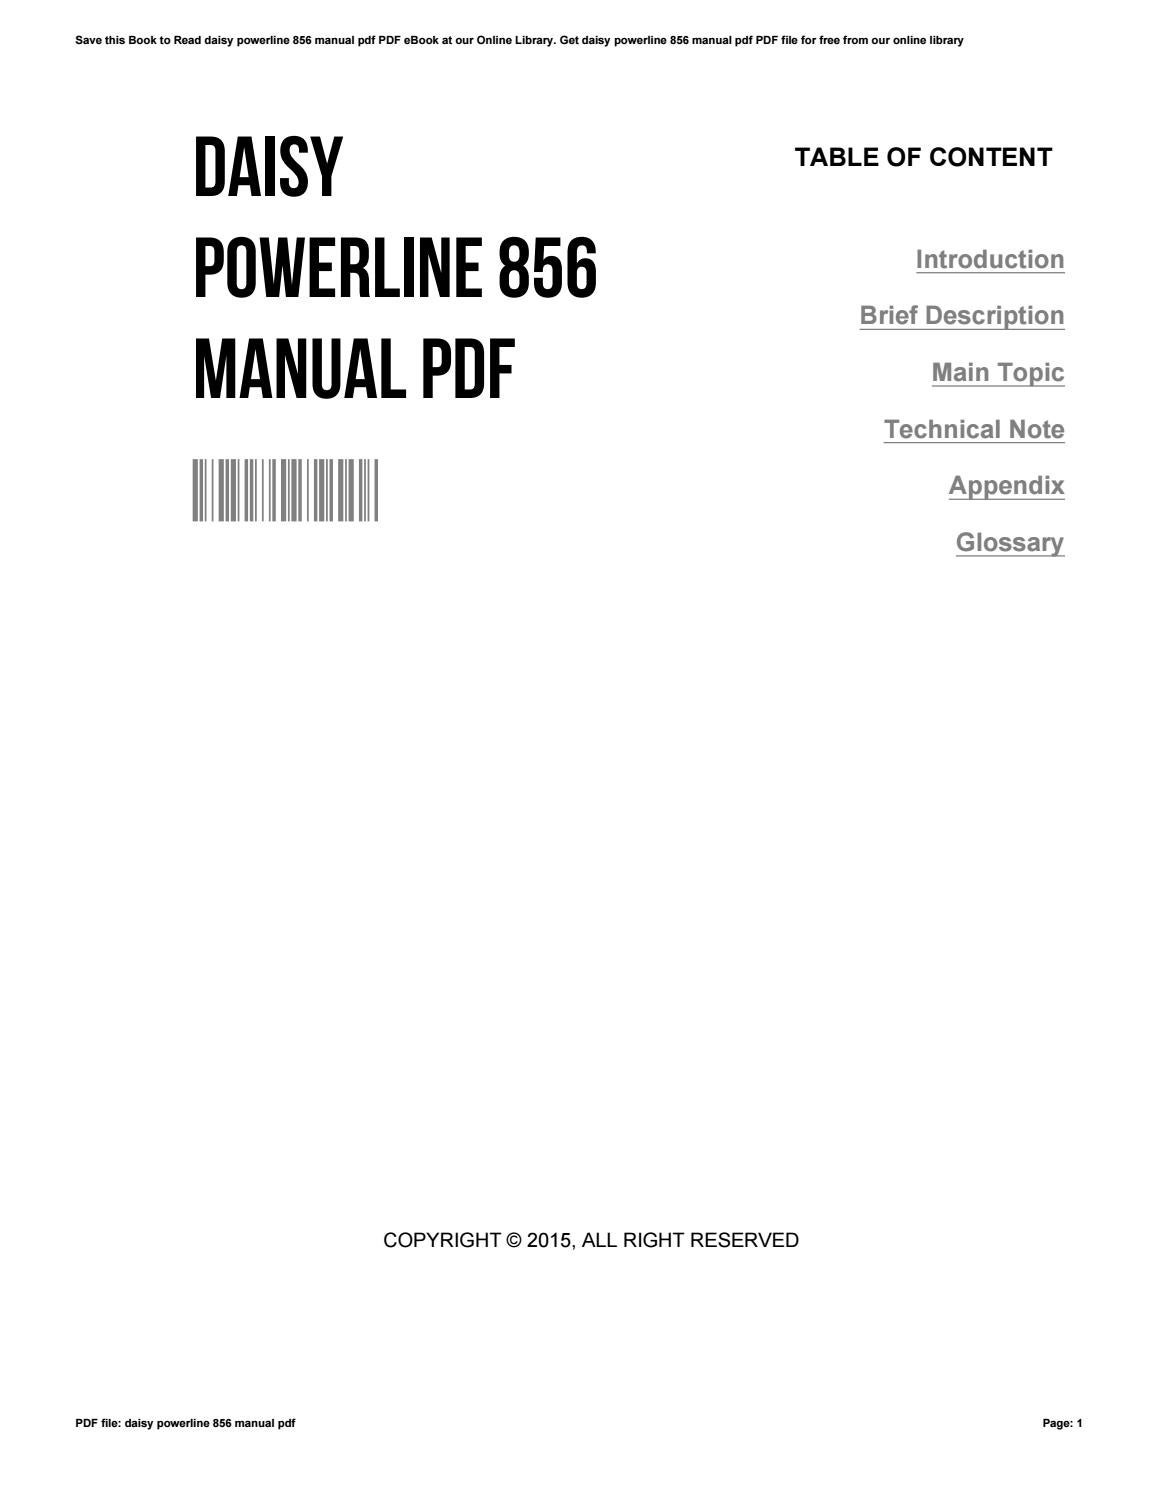 daisy powerline 822 owners manual